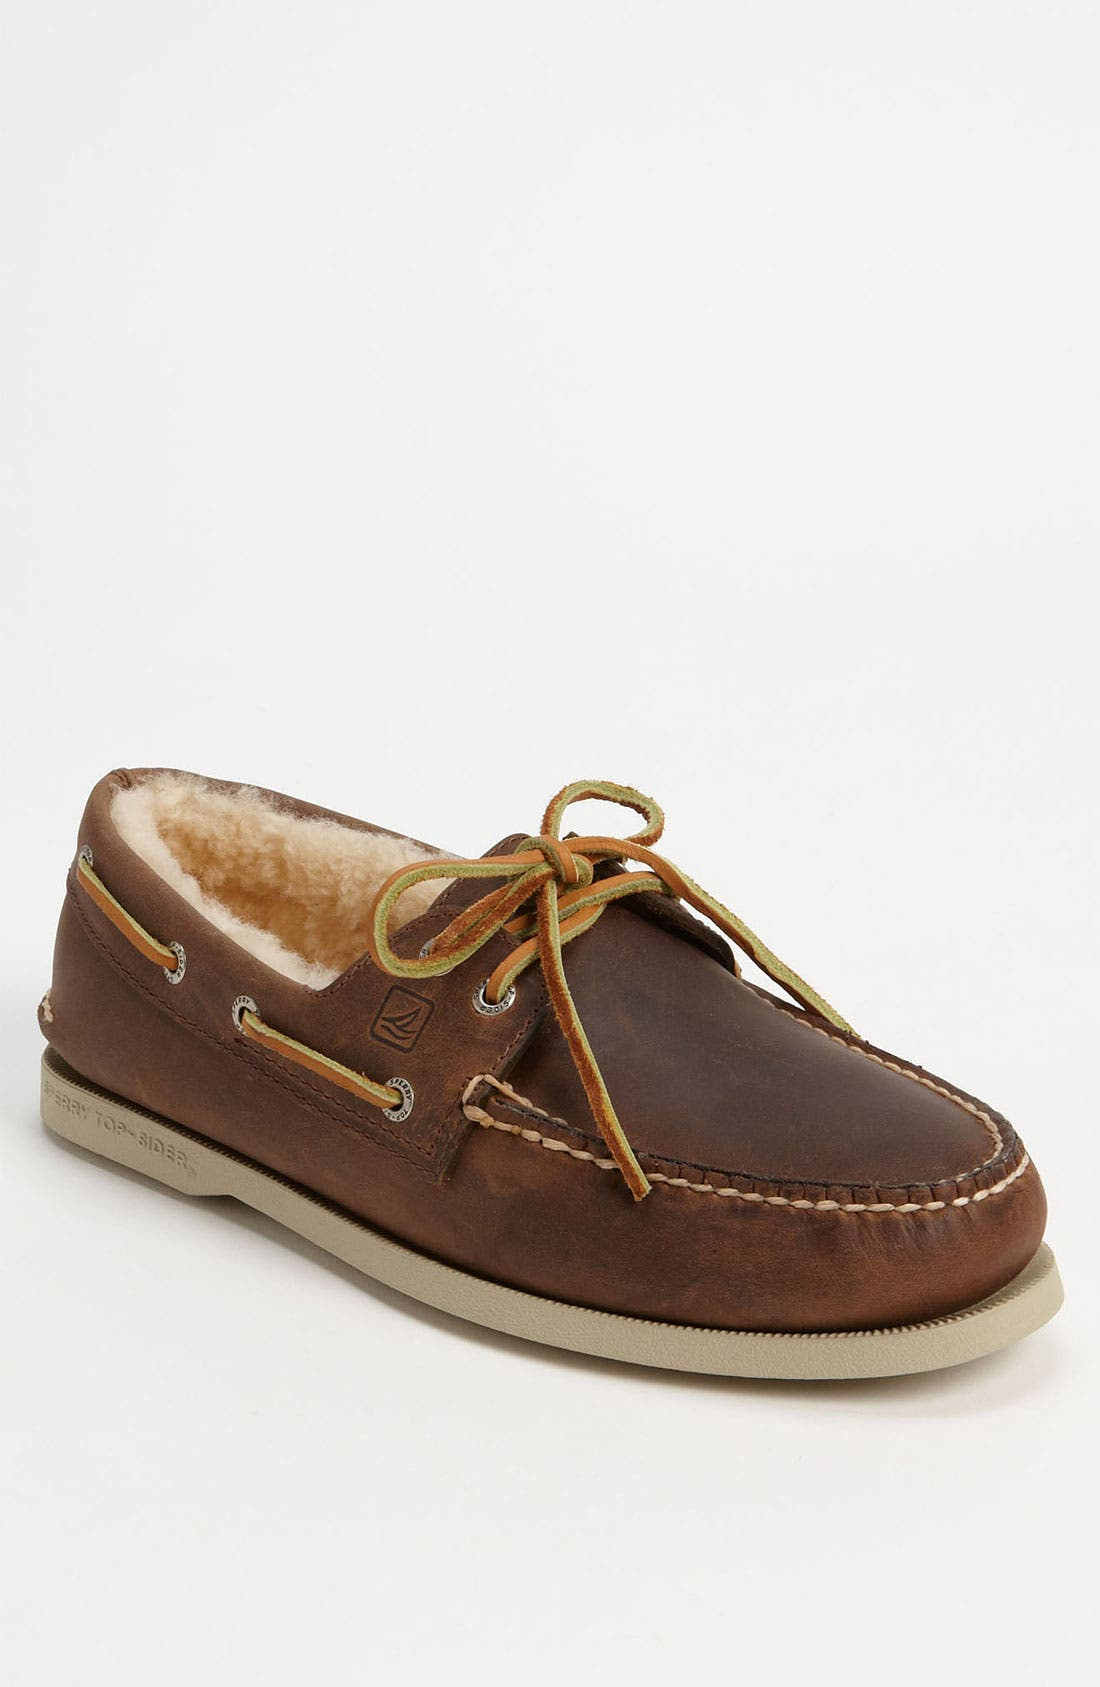 Alternate Image 1 Selected - Sperry Top-Sider™ 'Authentic Original - Winter' Boat Shoe